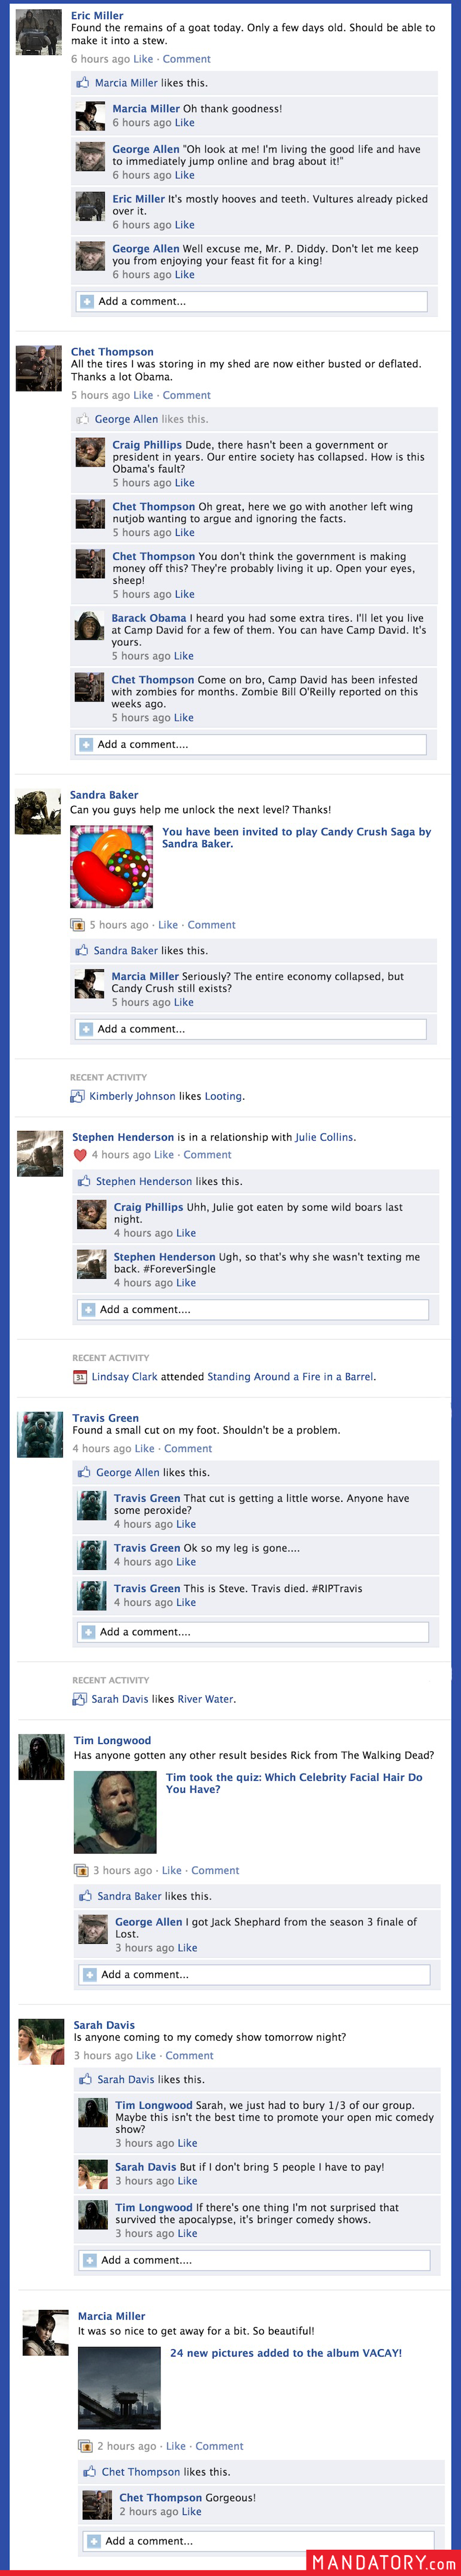 What Your Facebook Timeline Will Probably Look Like After The Apocalypse